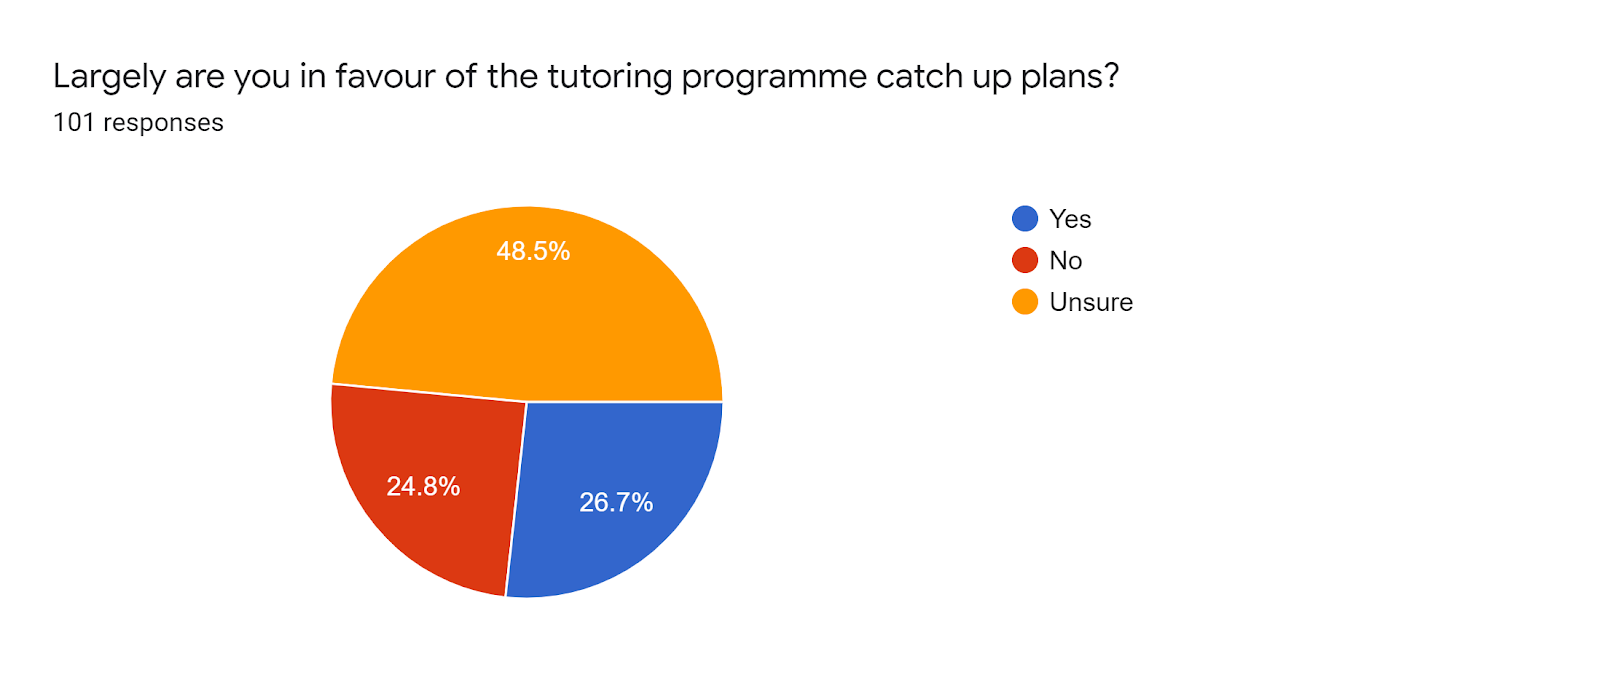 Forms response chart. Question title: Largely are you in favour of the tutoring programme catch up plans?. Number of responses: 101 responses.